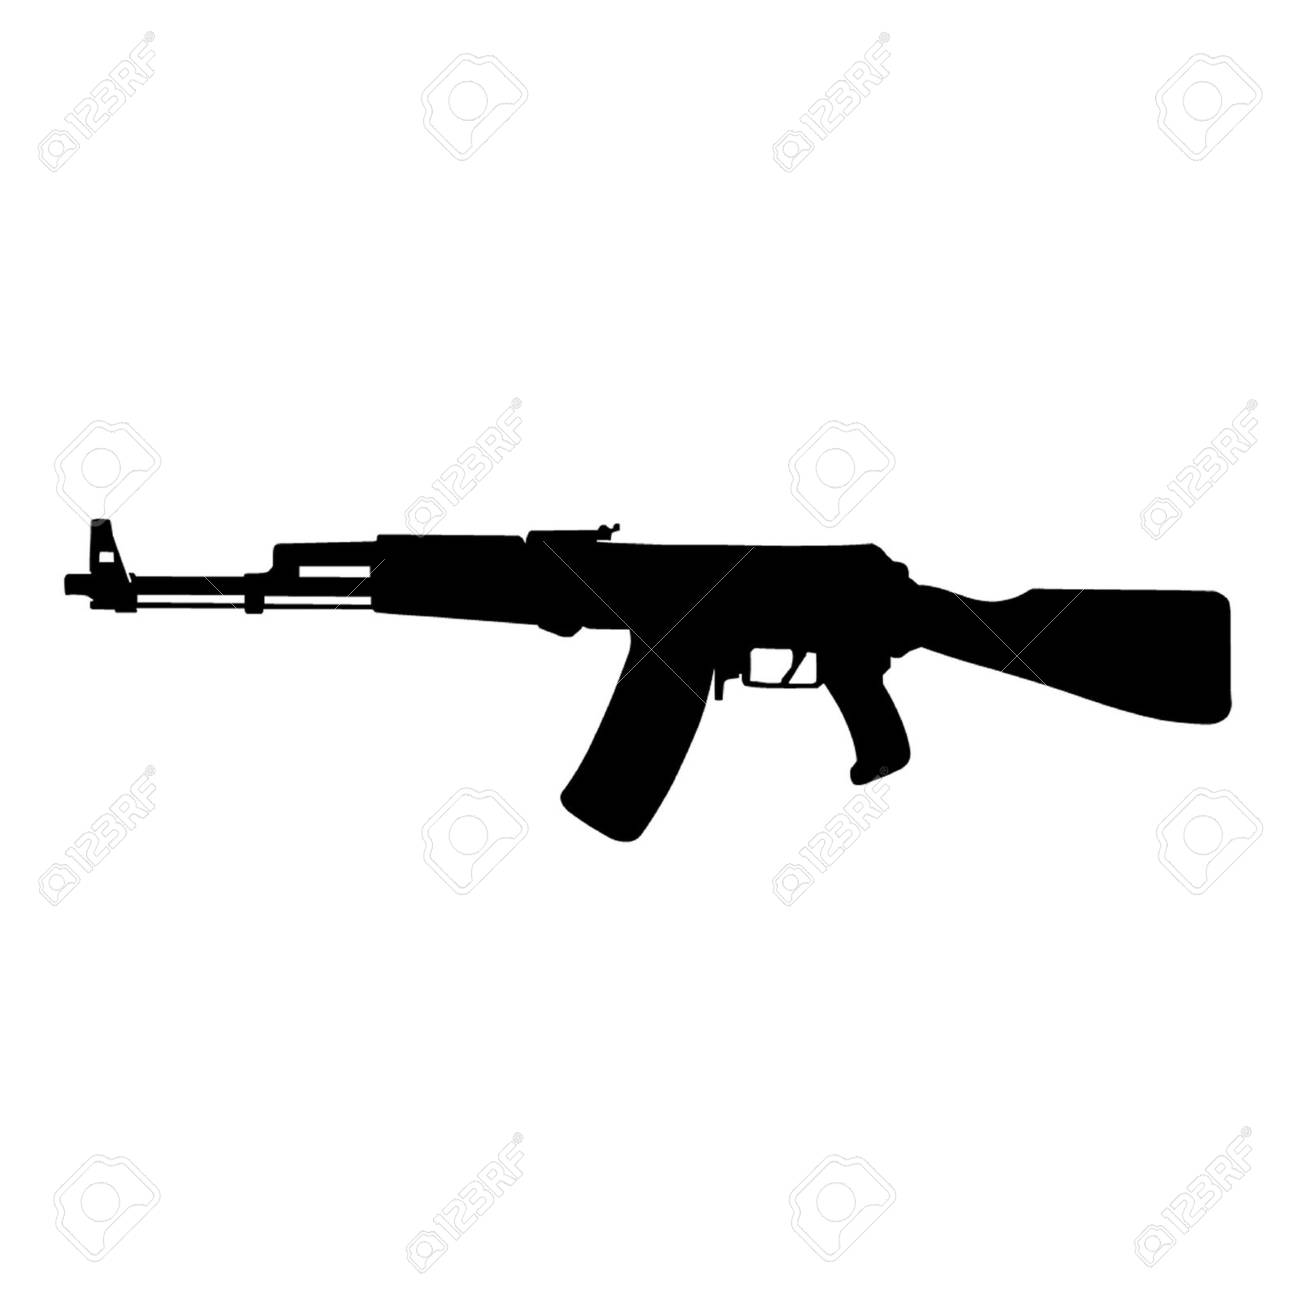 ak 47 assault rifle kalashnikov royalty free cliparts vectors and rh 123rf com ak 47 vector png ak 47 vector